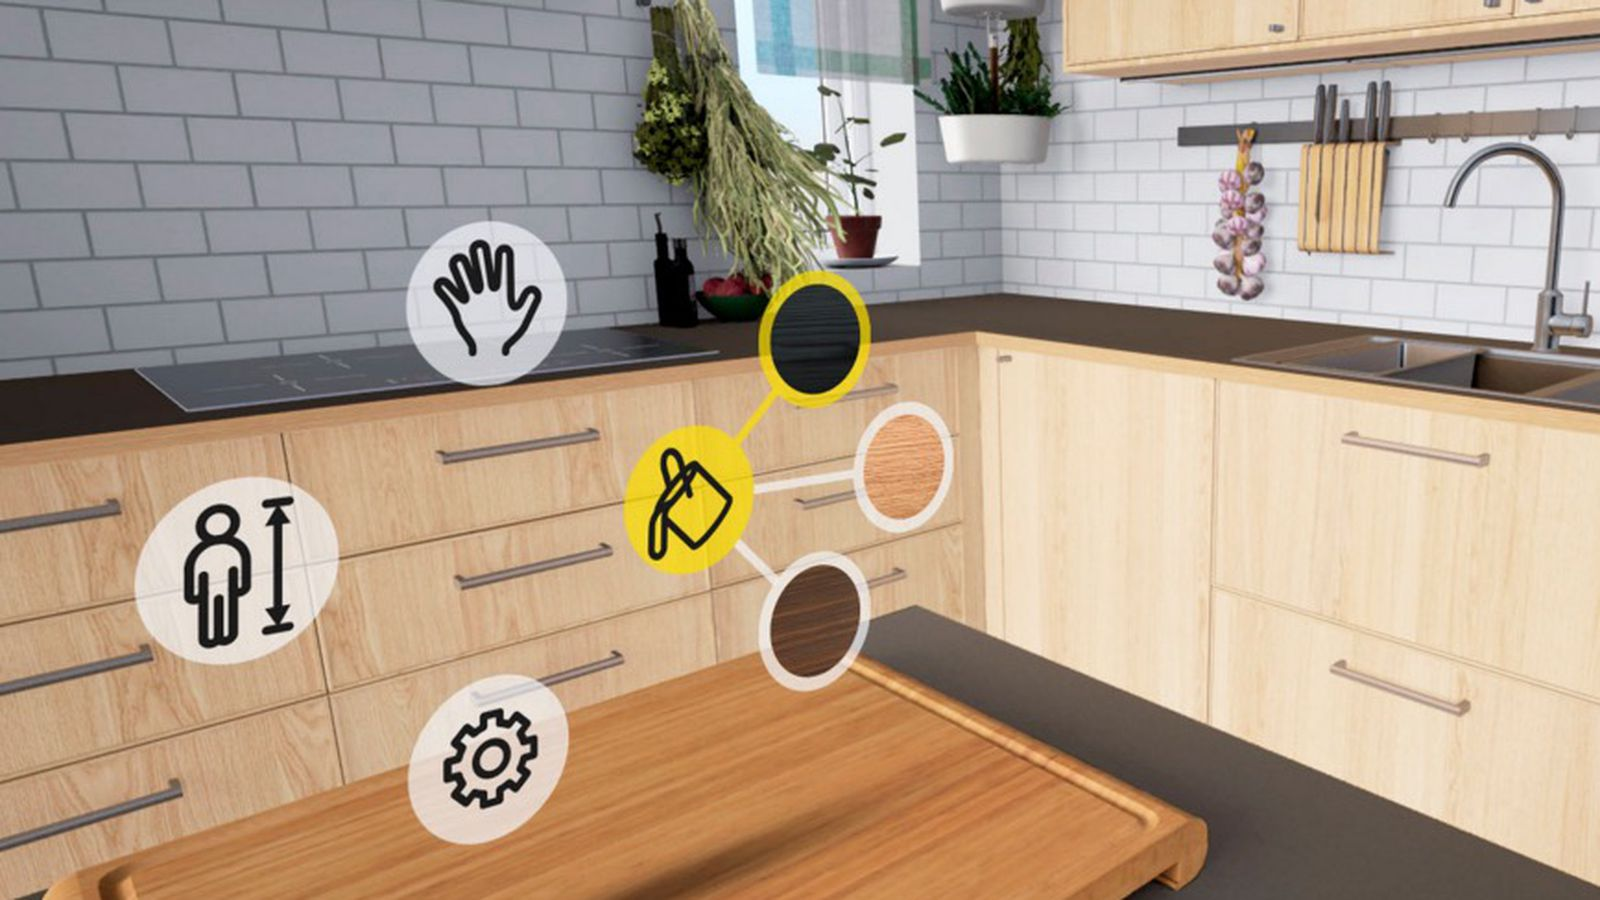 ikea turns kitchen remodelling into an htc vive vr game the verge. Black Bedroom Furniture Sets. Home Design Ideas